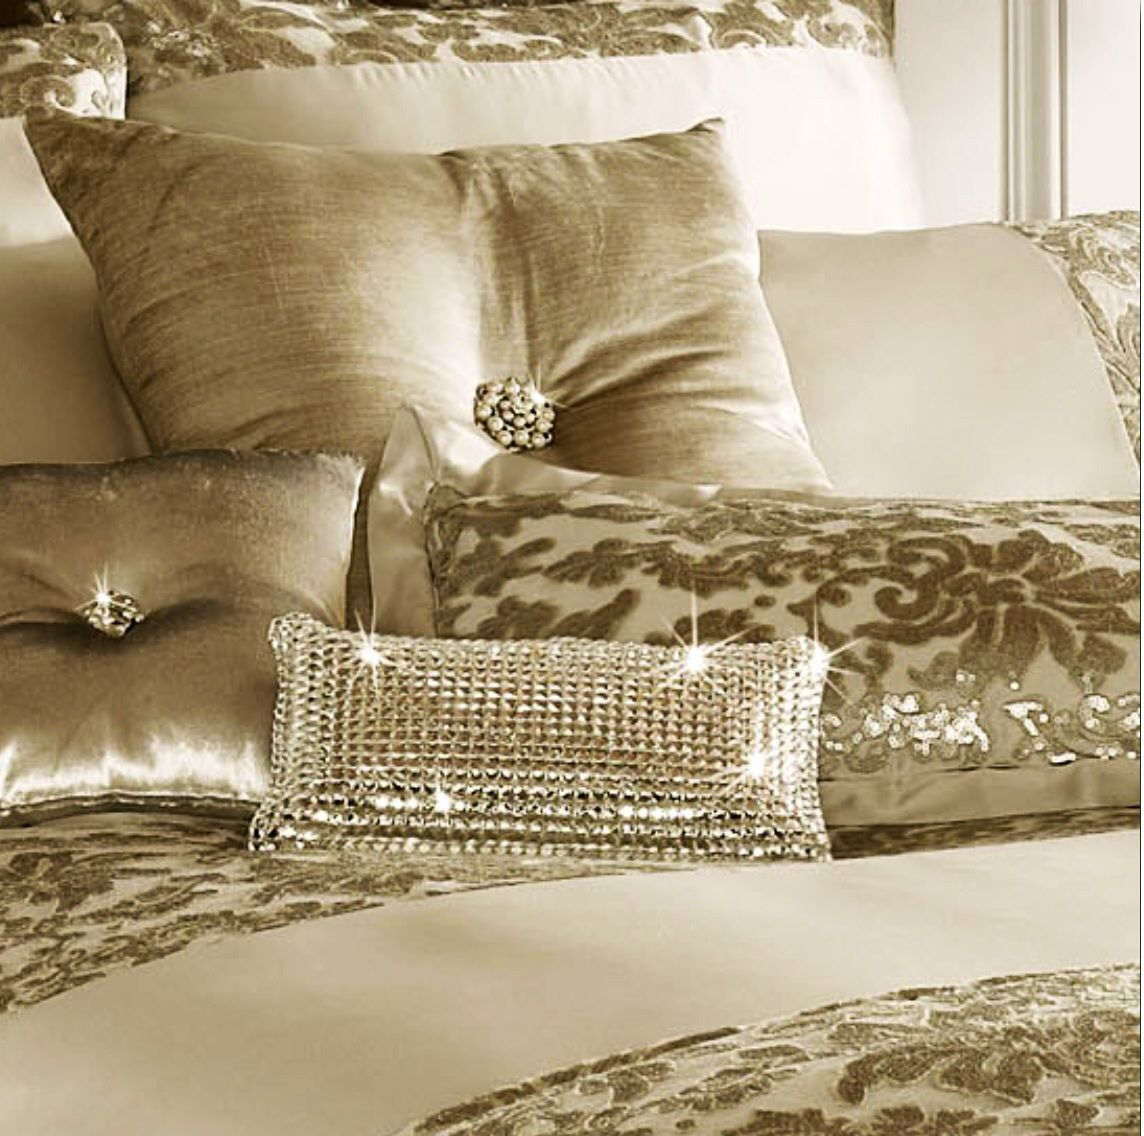 The latest jewel in the crown cushion from kylieminogue